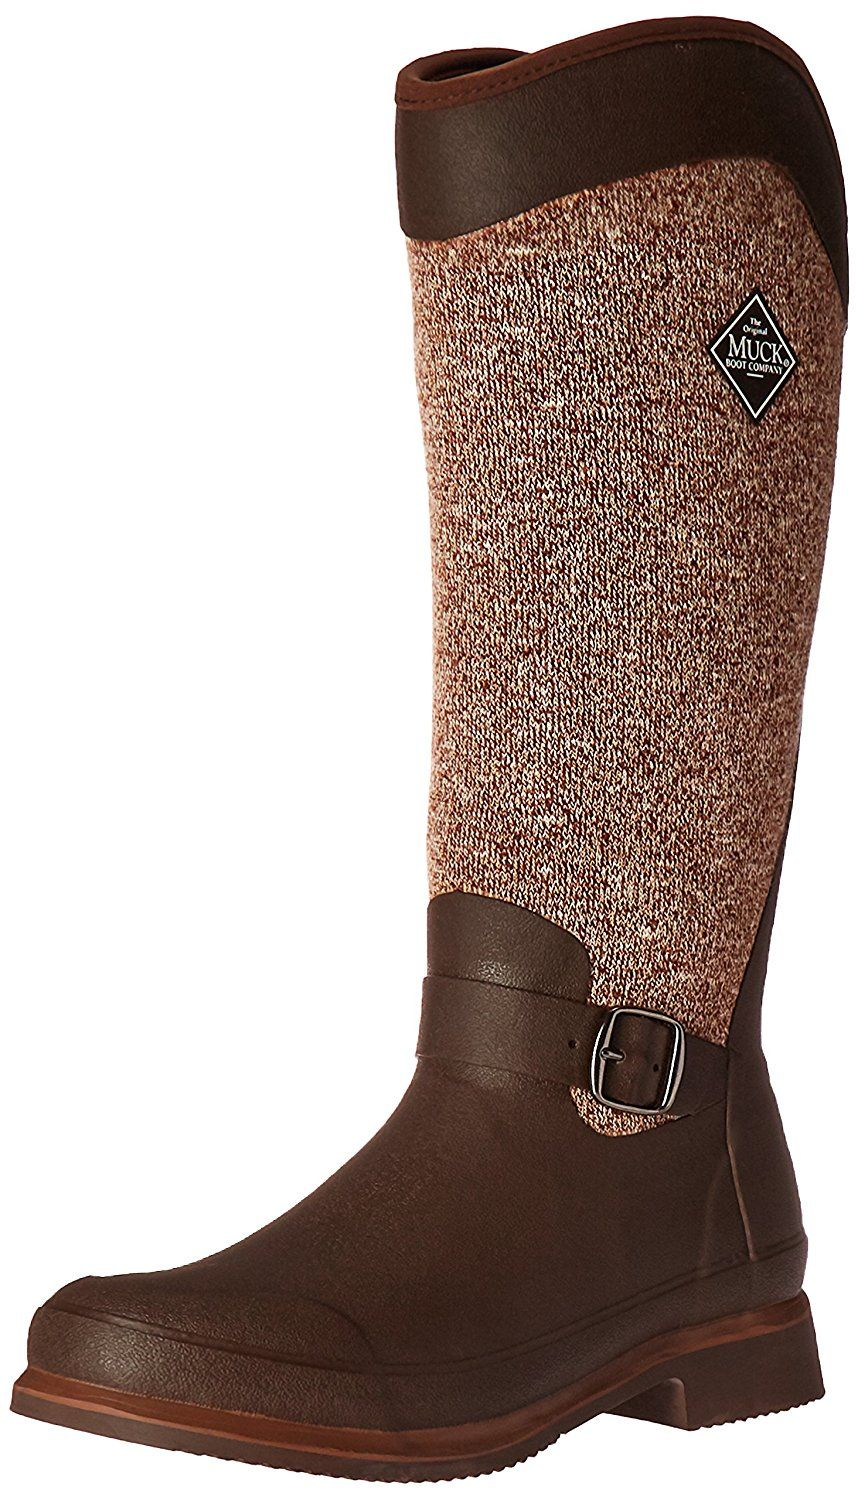 09dd3177204b Muck Boot Women's Reign Supreme Snow -- This is an Amazon Affiliate link.  You can get additional details at the image link.